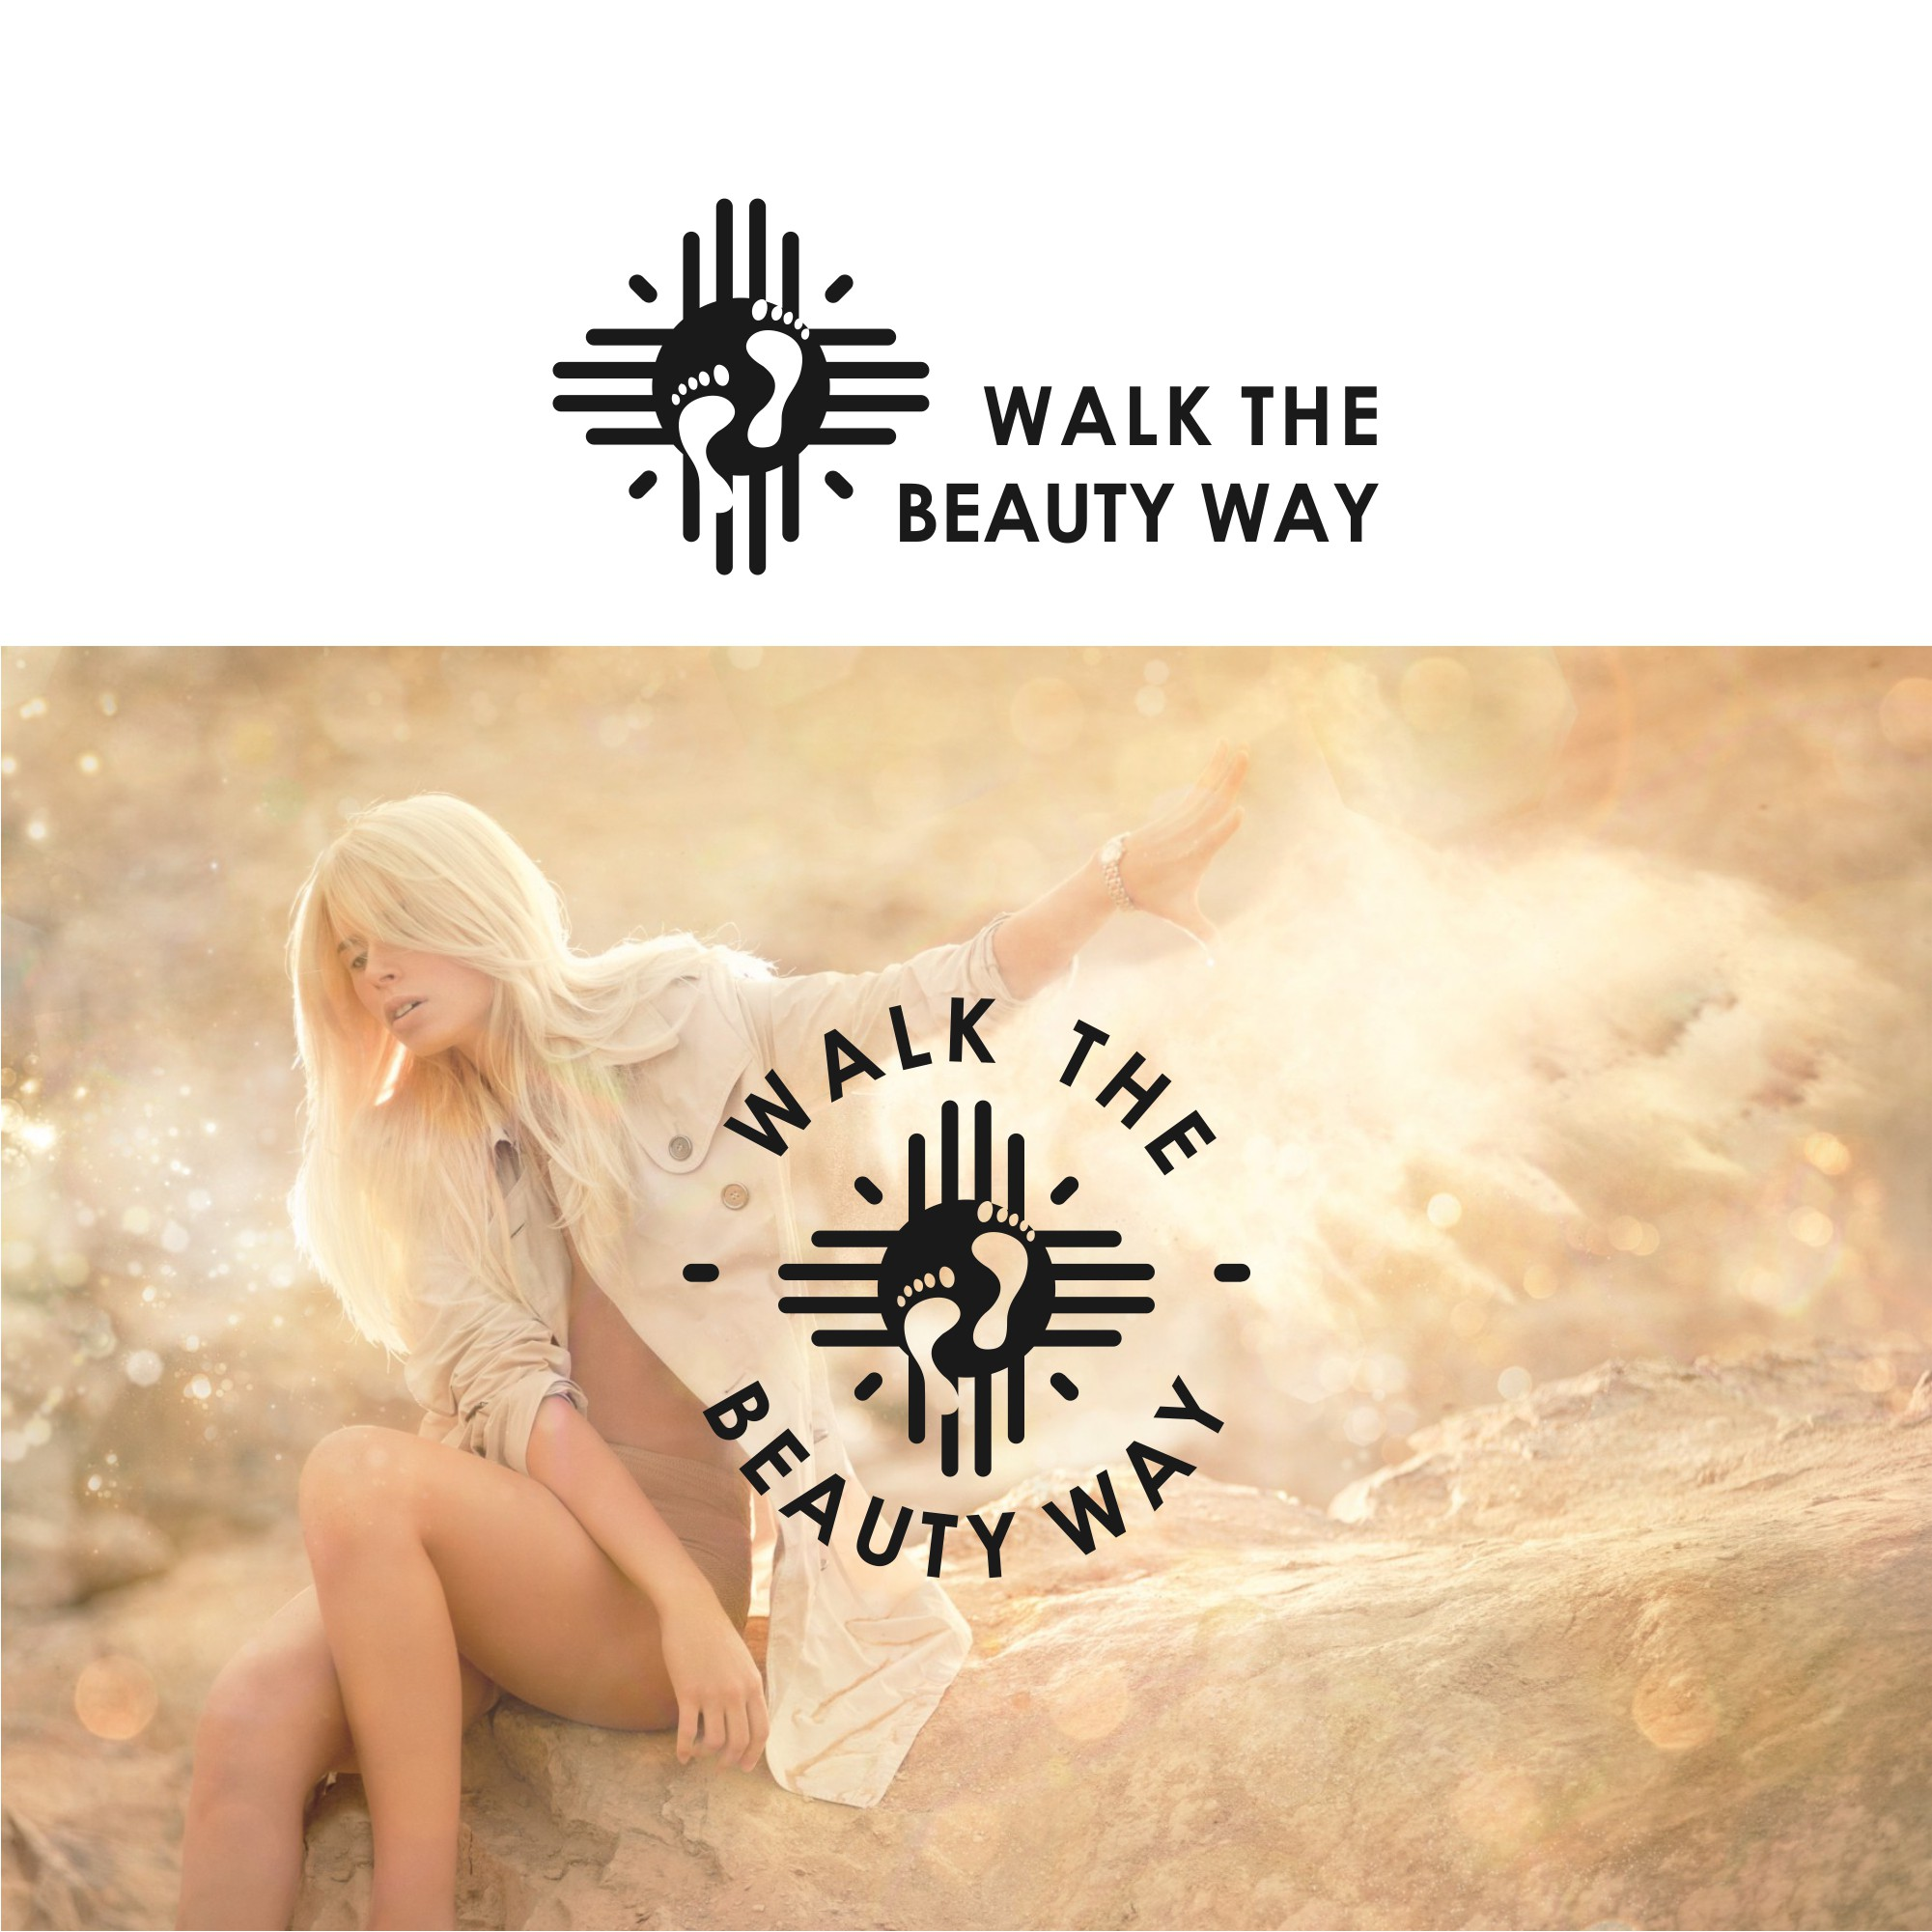 Walk the Beauty Way.... conscious fashion, make a difference to the planet!